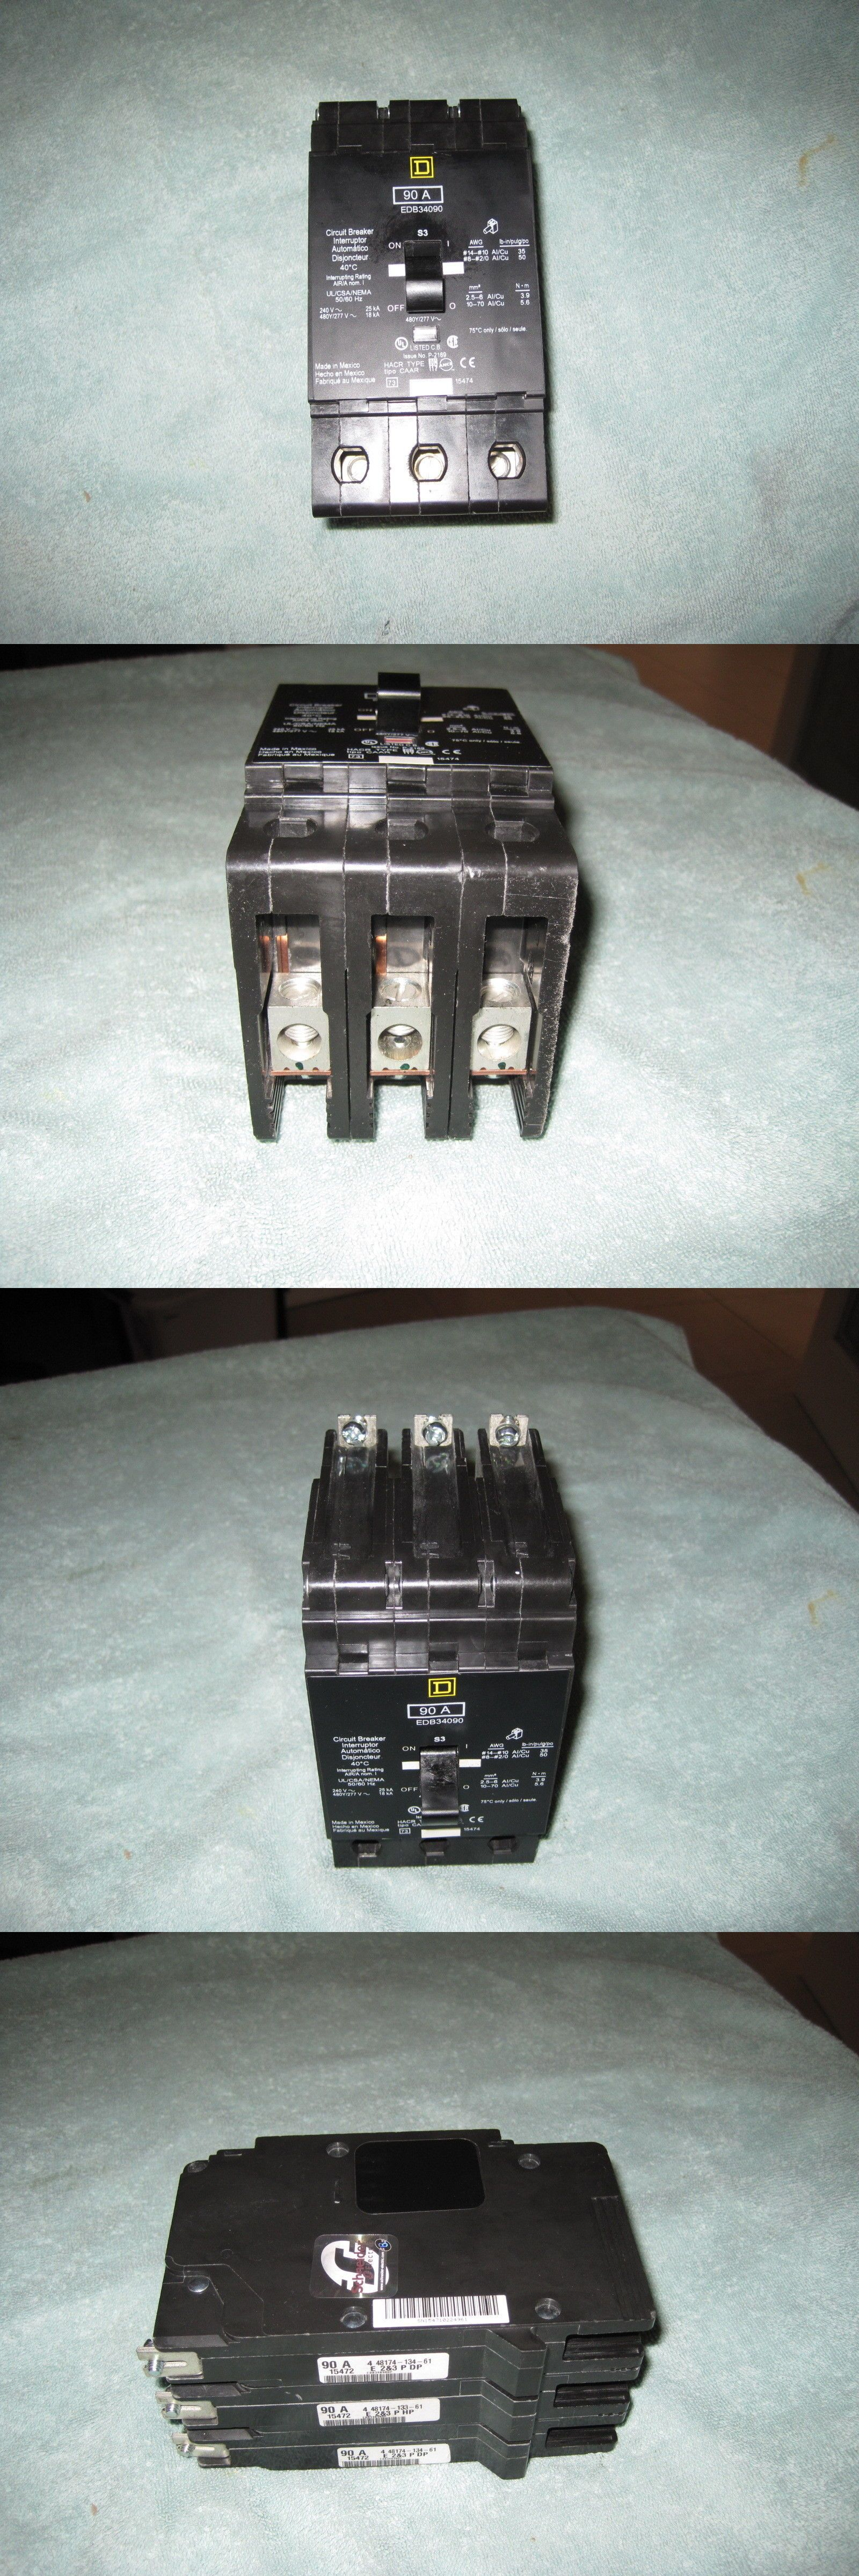 Square D Edb34090 Circuit Breaker 3 Pole 90 Amp 480 Volt Home Electrical Breakers Load Centers Fuses And Fuse Boxes 20596